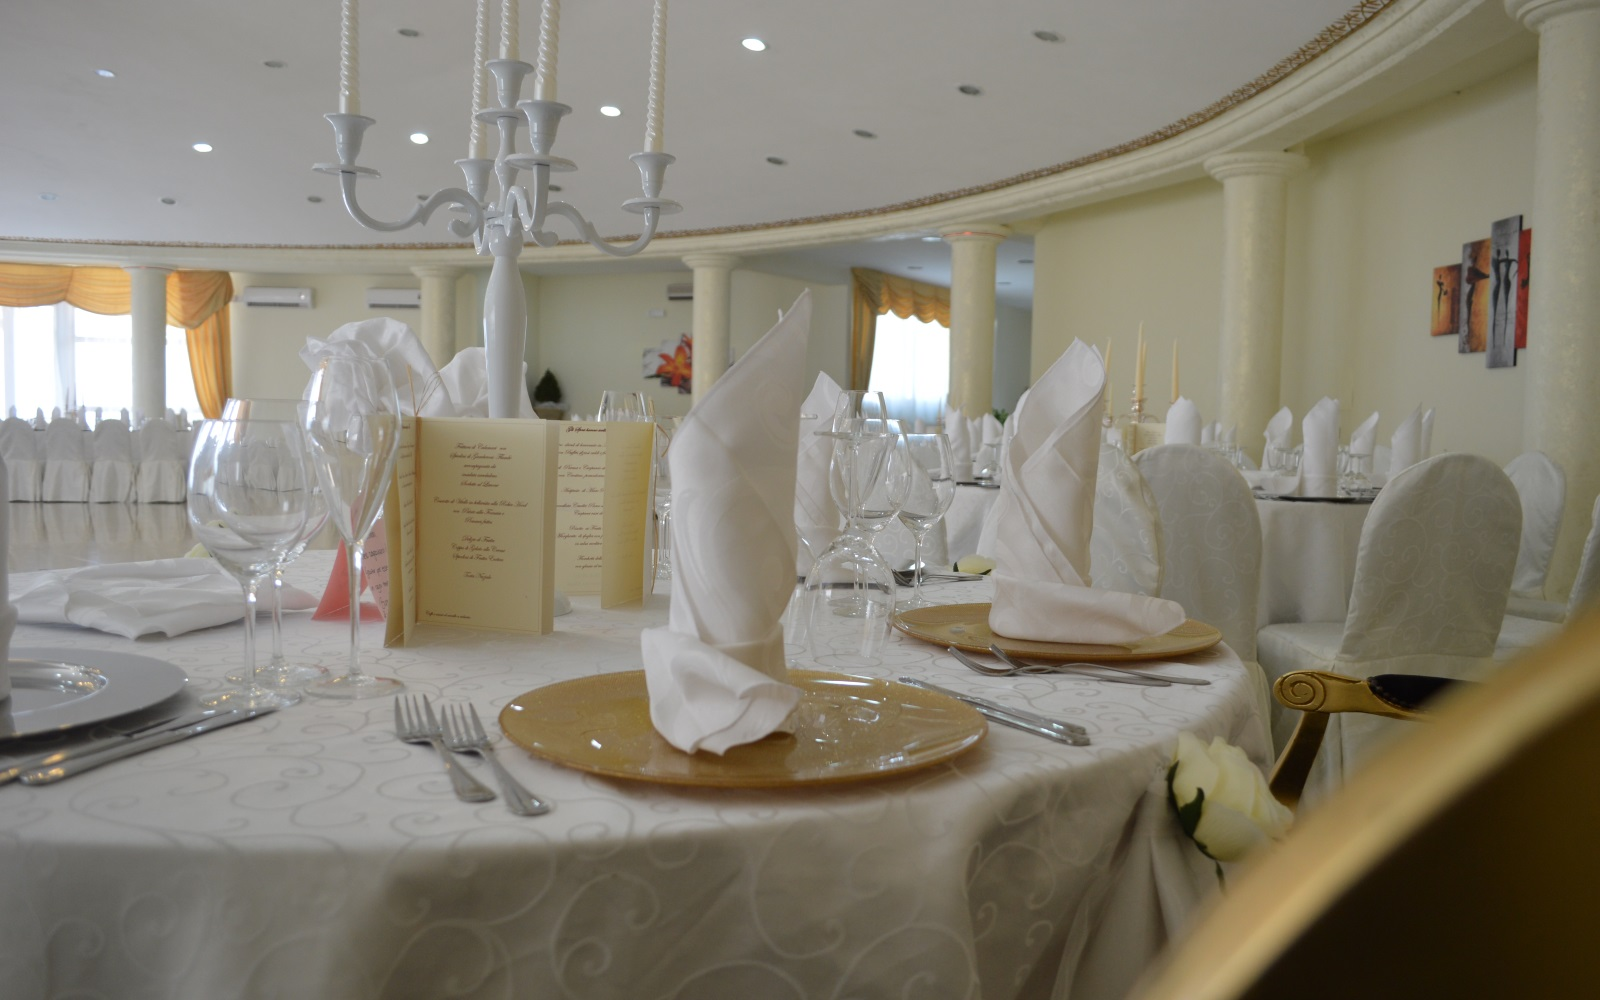 Location per Matrimoni in Puglia